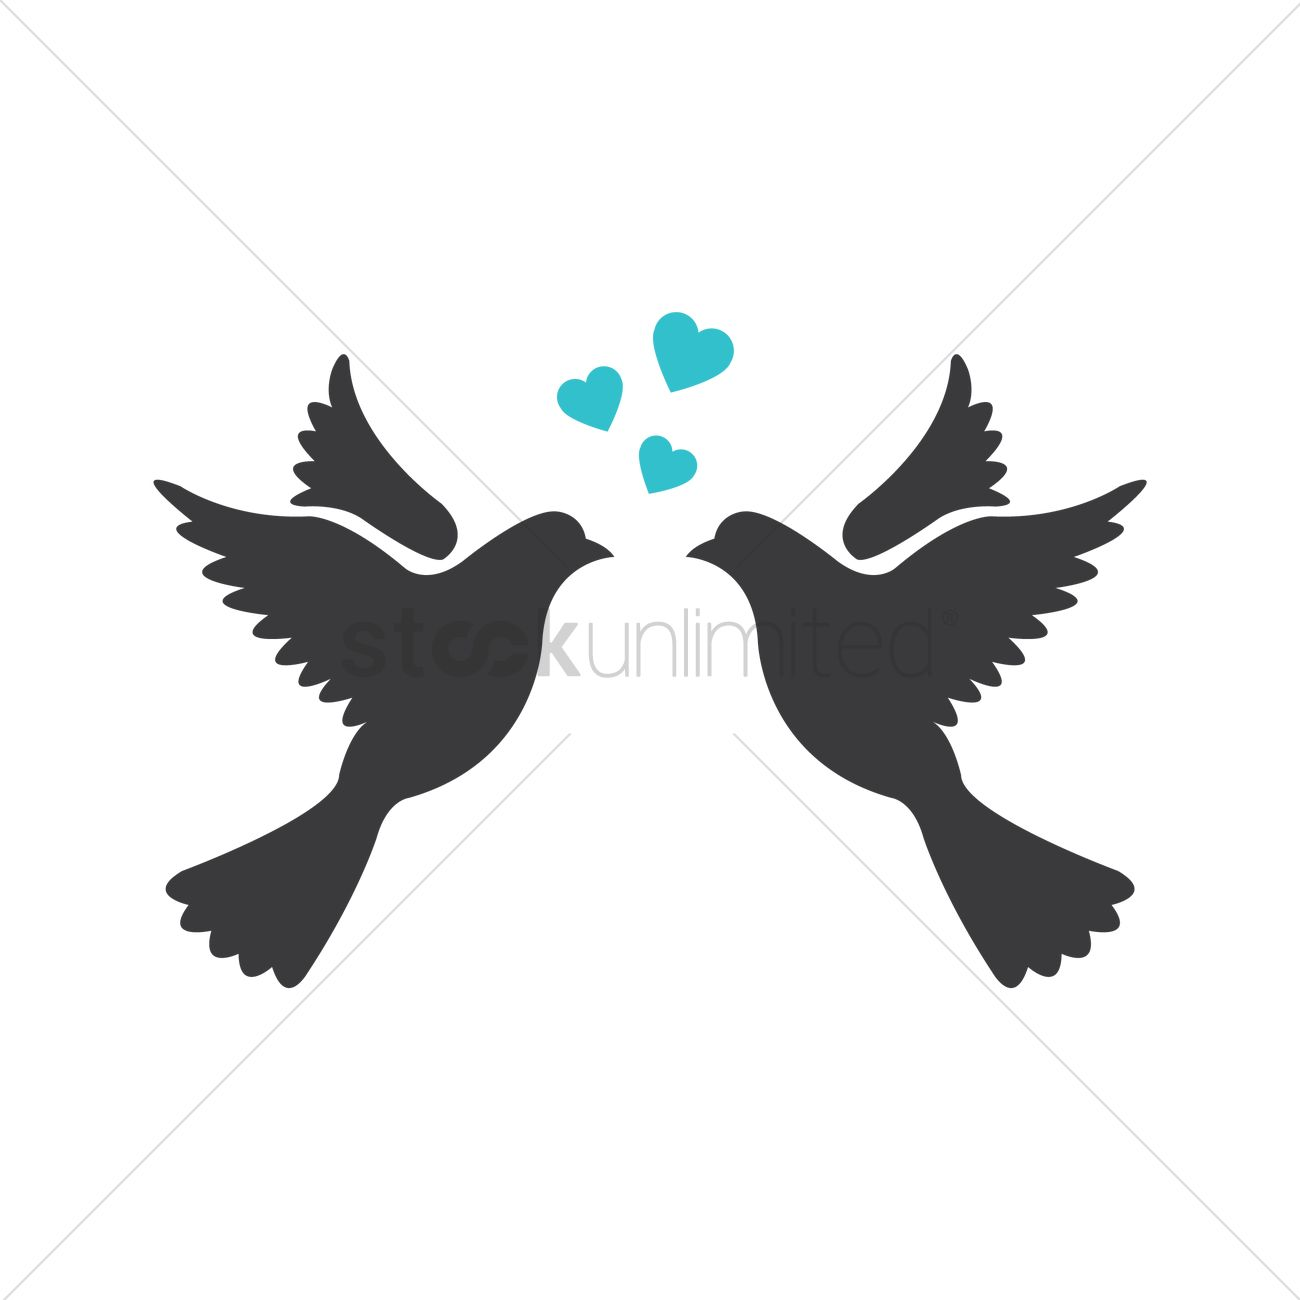 love birds vector image 1326857 stockunlimited love birds clip art image love birds clipart svd